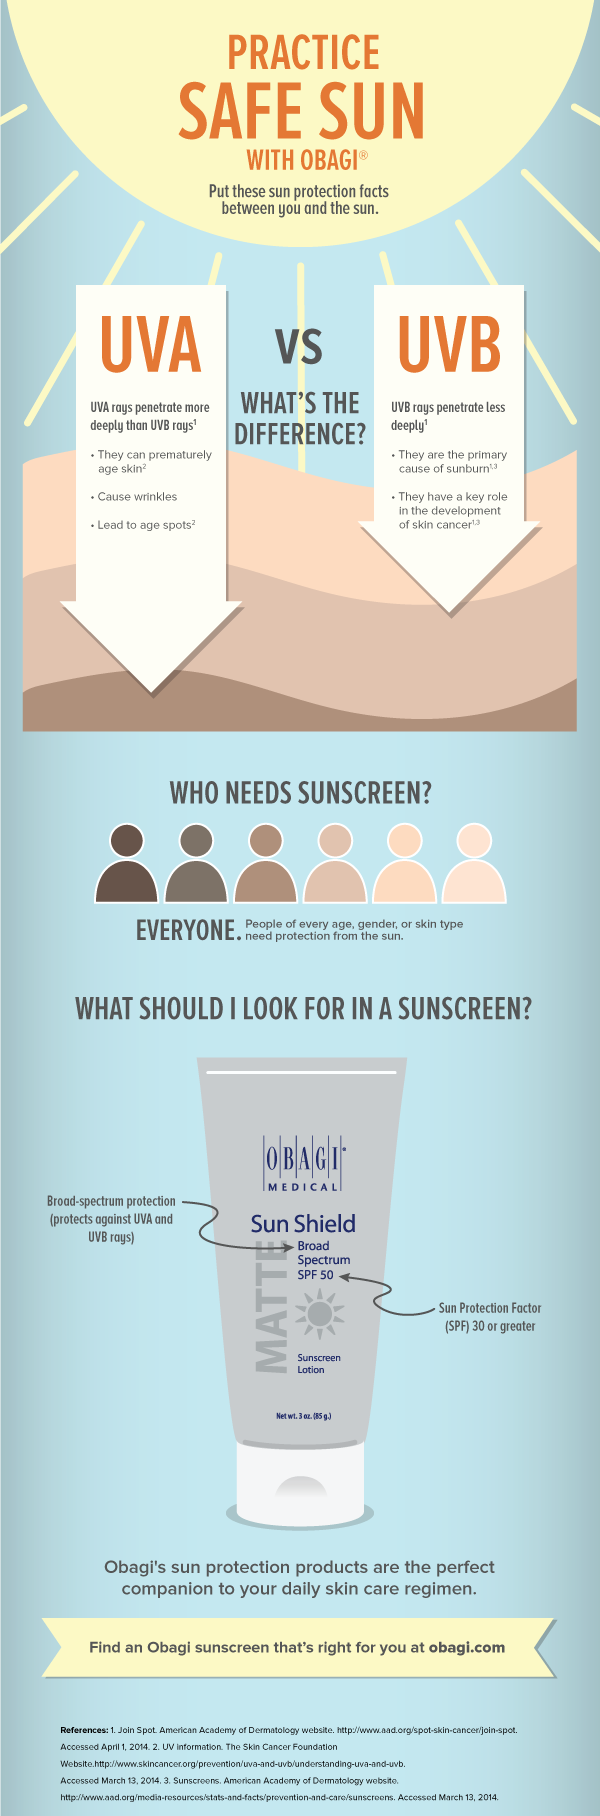 Learn how to practice safe sun with Obagi® sun care products.